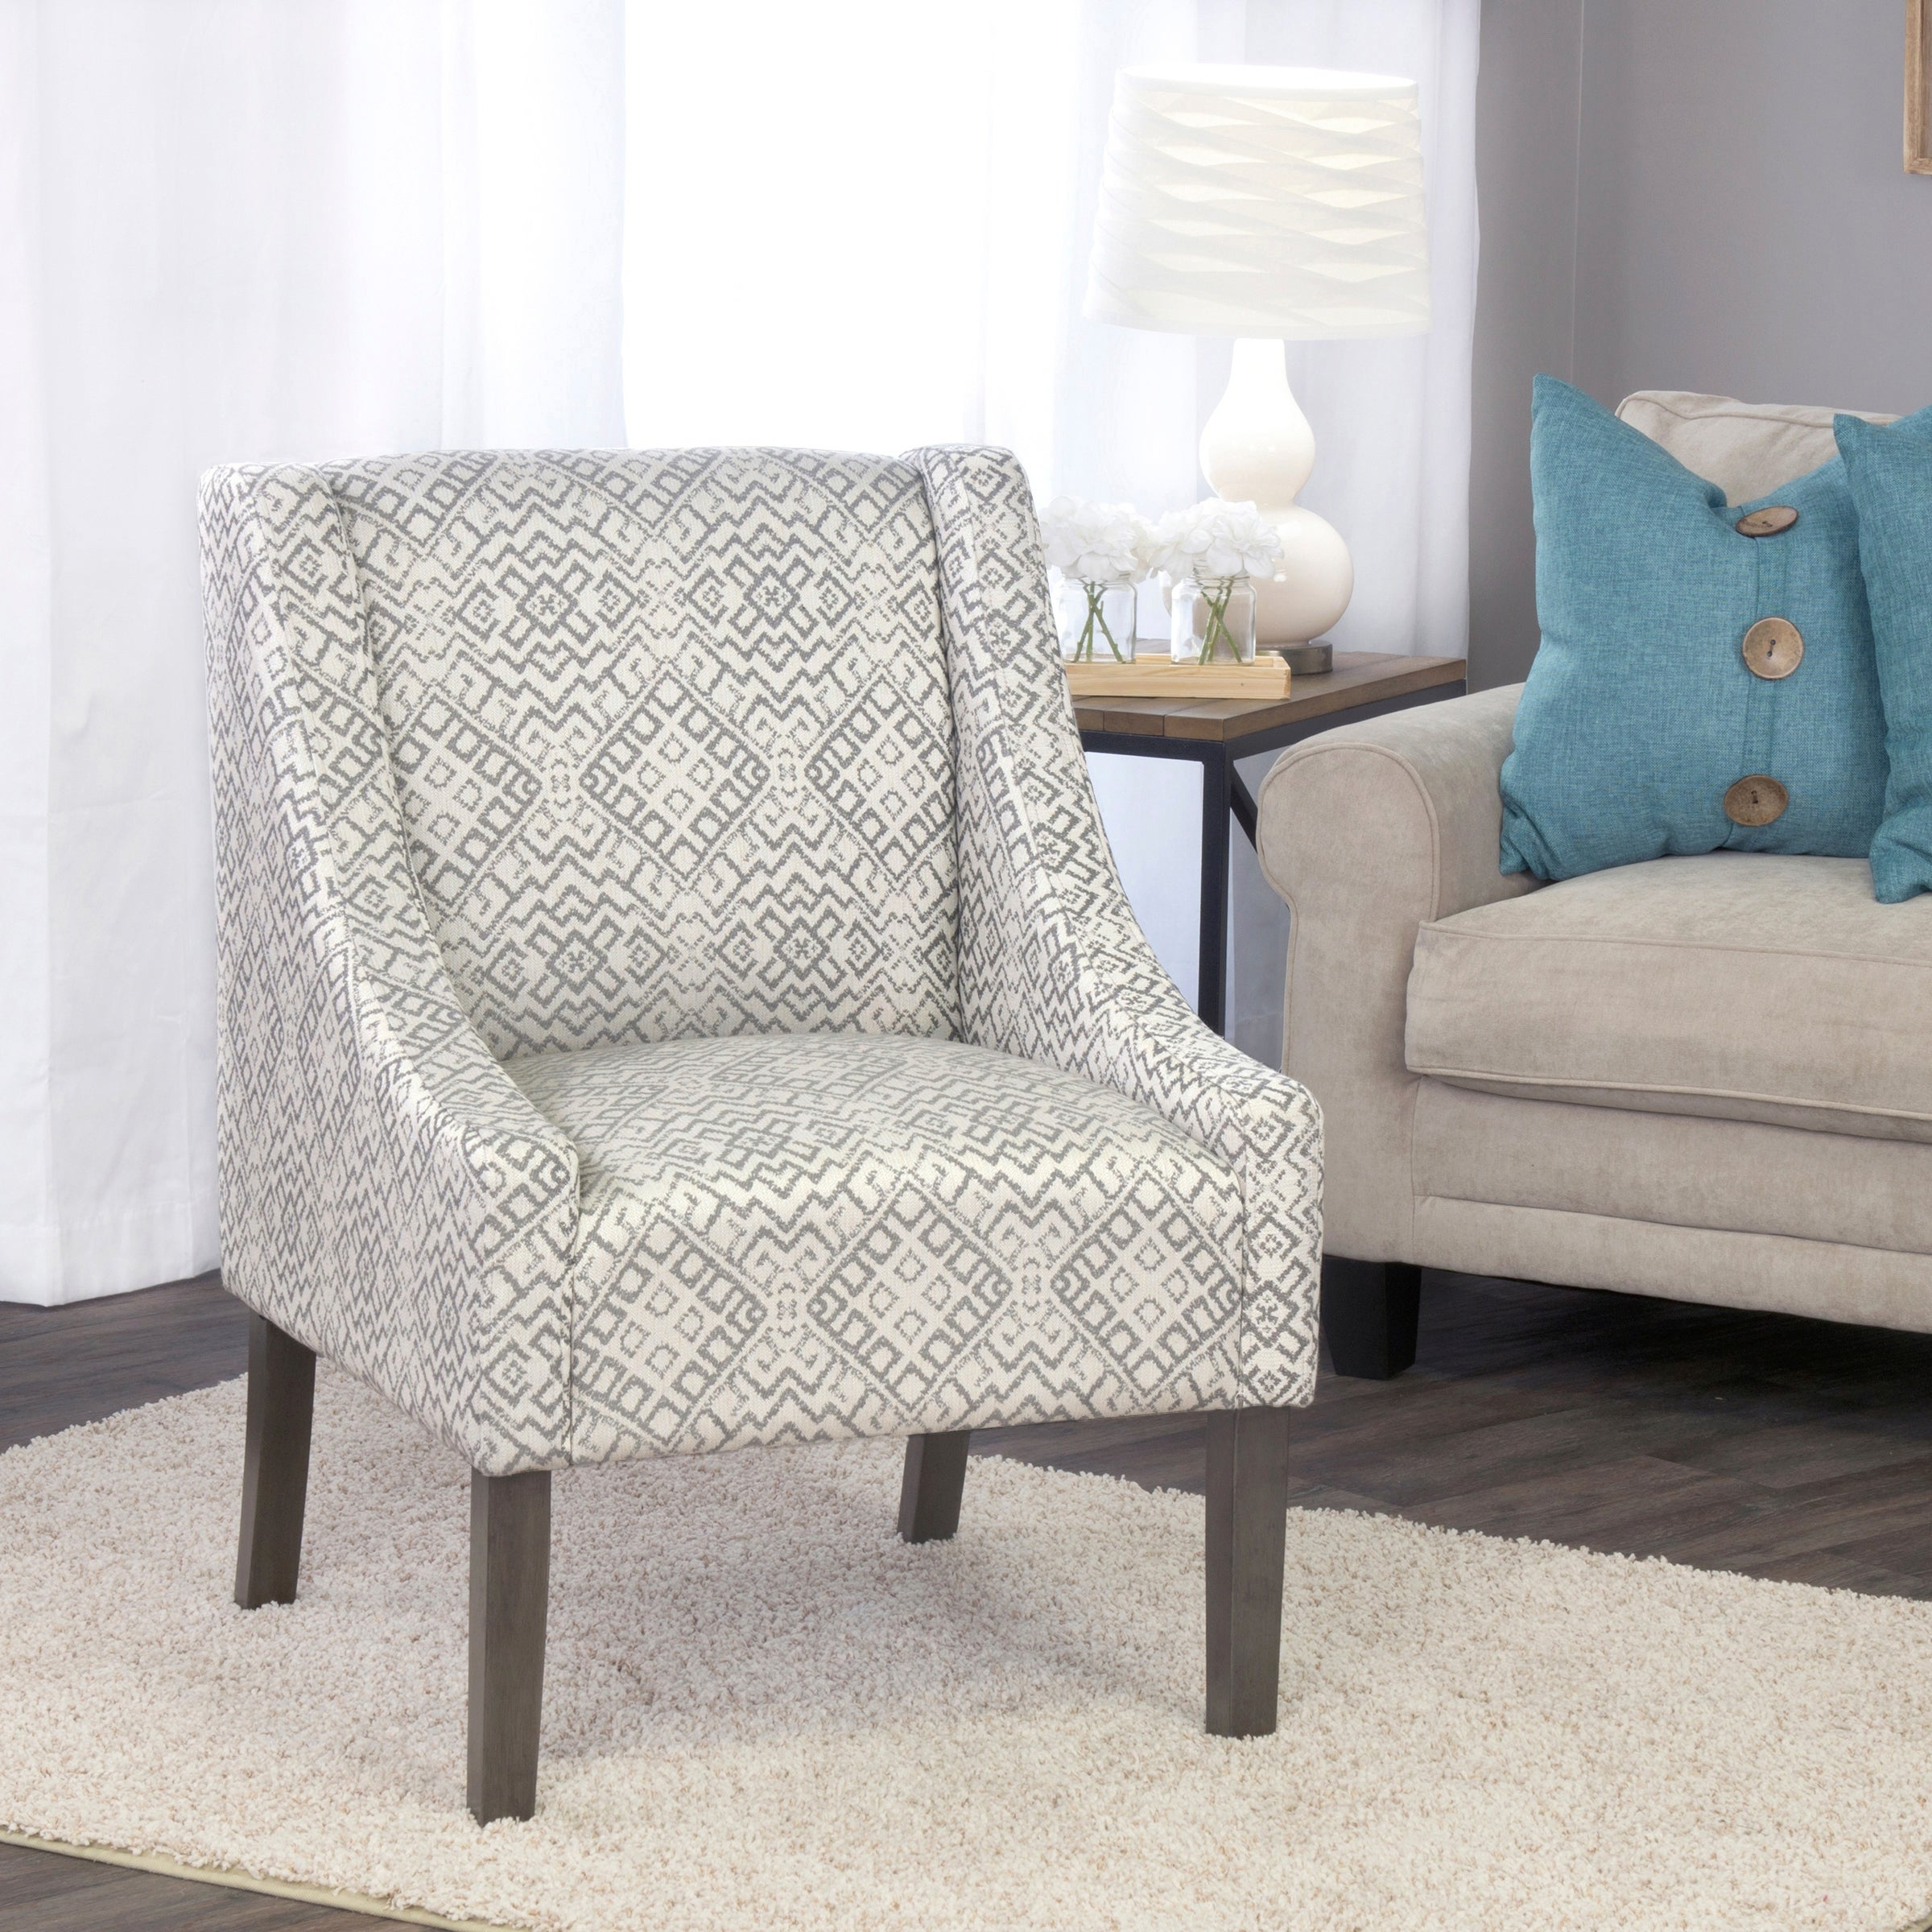 Altamahaw Swoop Side Chairs With Favorite Homepop Swoop Accent Chair In Tonal Gray (View 7 of 20)